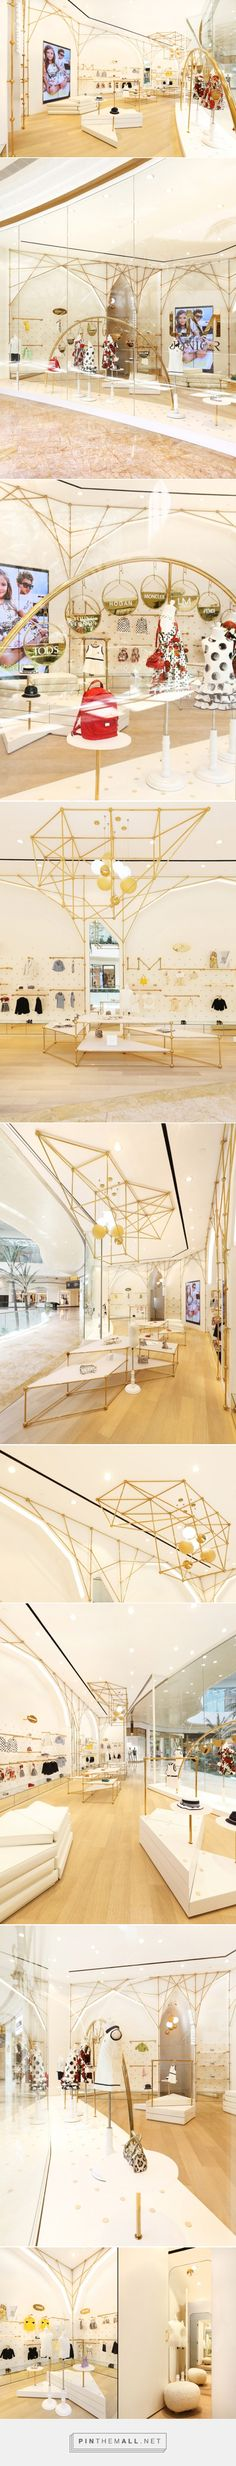 UM Junior Top Kid's Wear Multibrand Store by AS Design at Sands Cotai Central, Macau – China »  Retail Design Blog - created via https://pinthemall.net